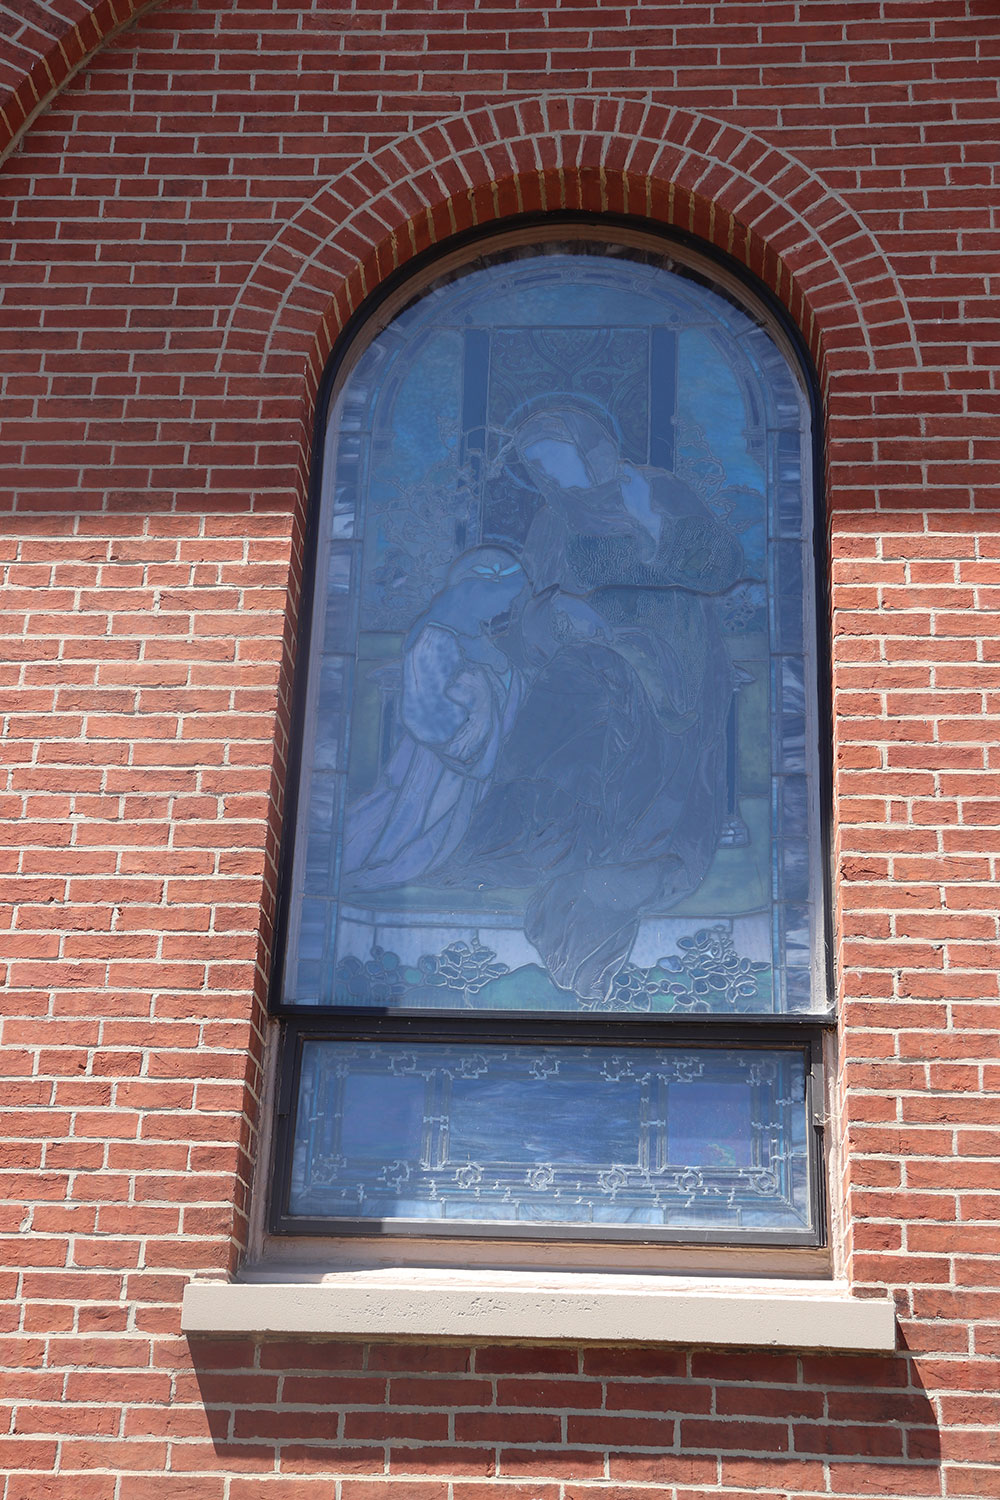 St. Anne's Parish Tiffany Stained Glass Window, Annapolis